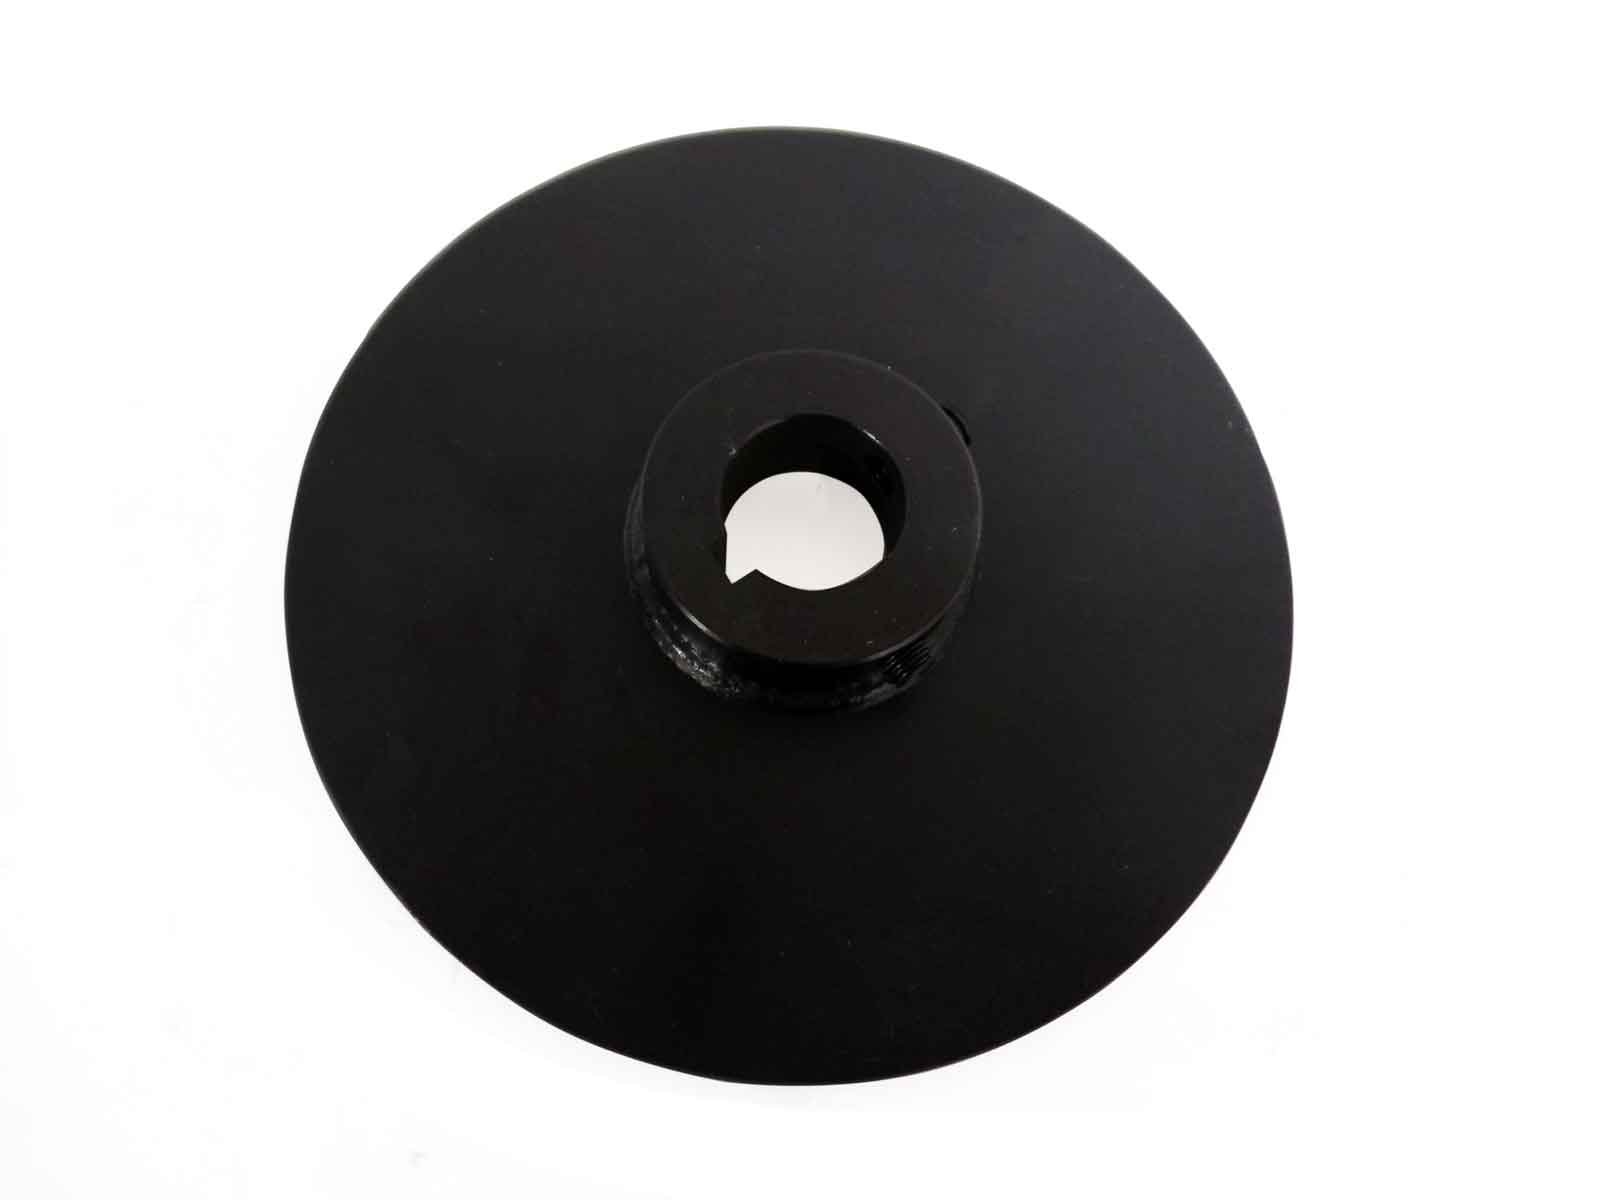 "Disc Only, 6"" Diameter, 1"" Bore, 1/8"" Thick"